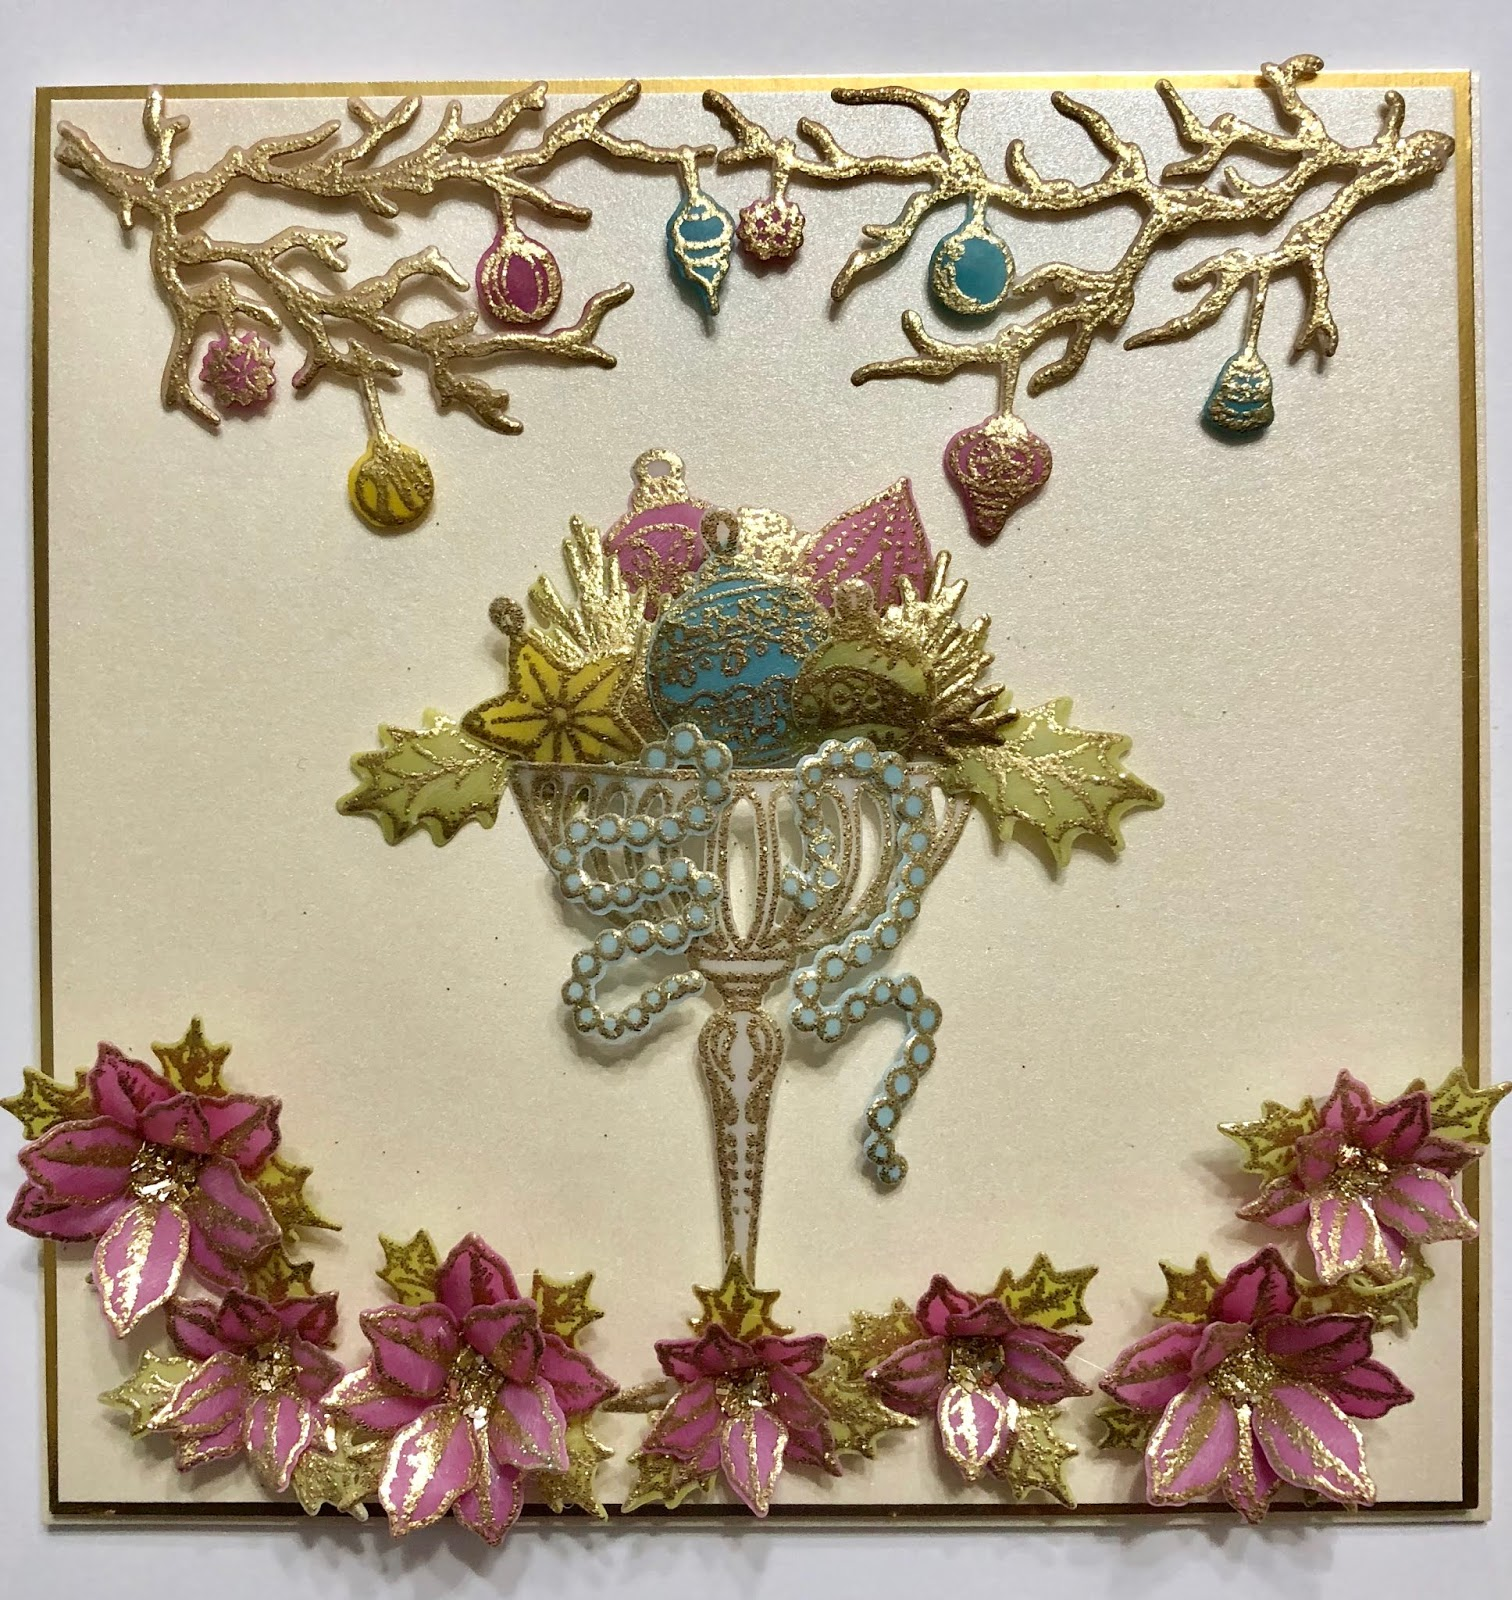 Jans paper flowers heartfelt creations a vellum christmas i just love rajni chawlas vellum flowerite its a heavier vellum that you can heat emboss and not have a lot of your embossing flake off its amazing mightylinksfo